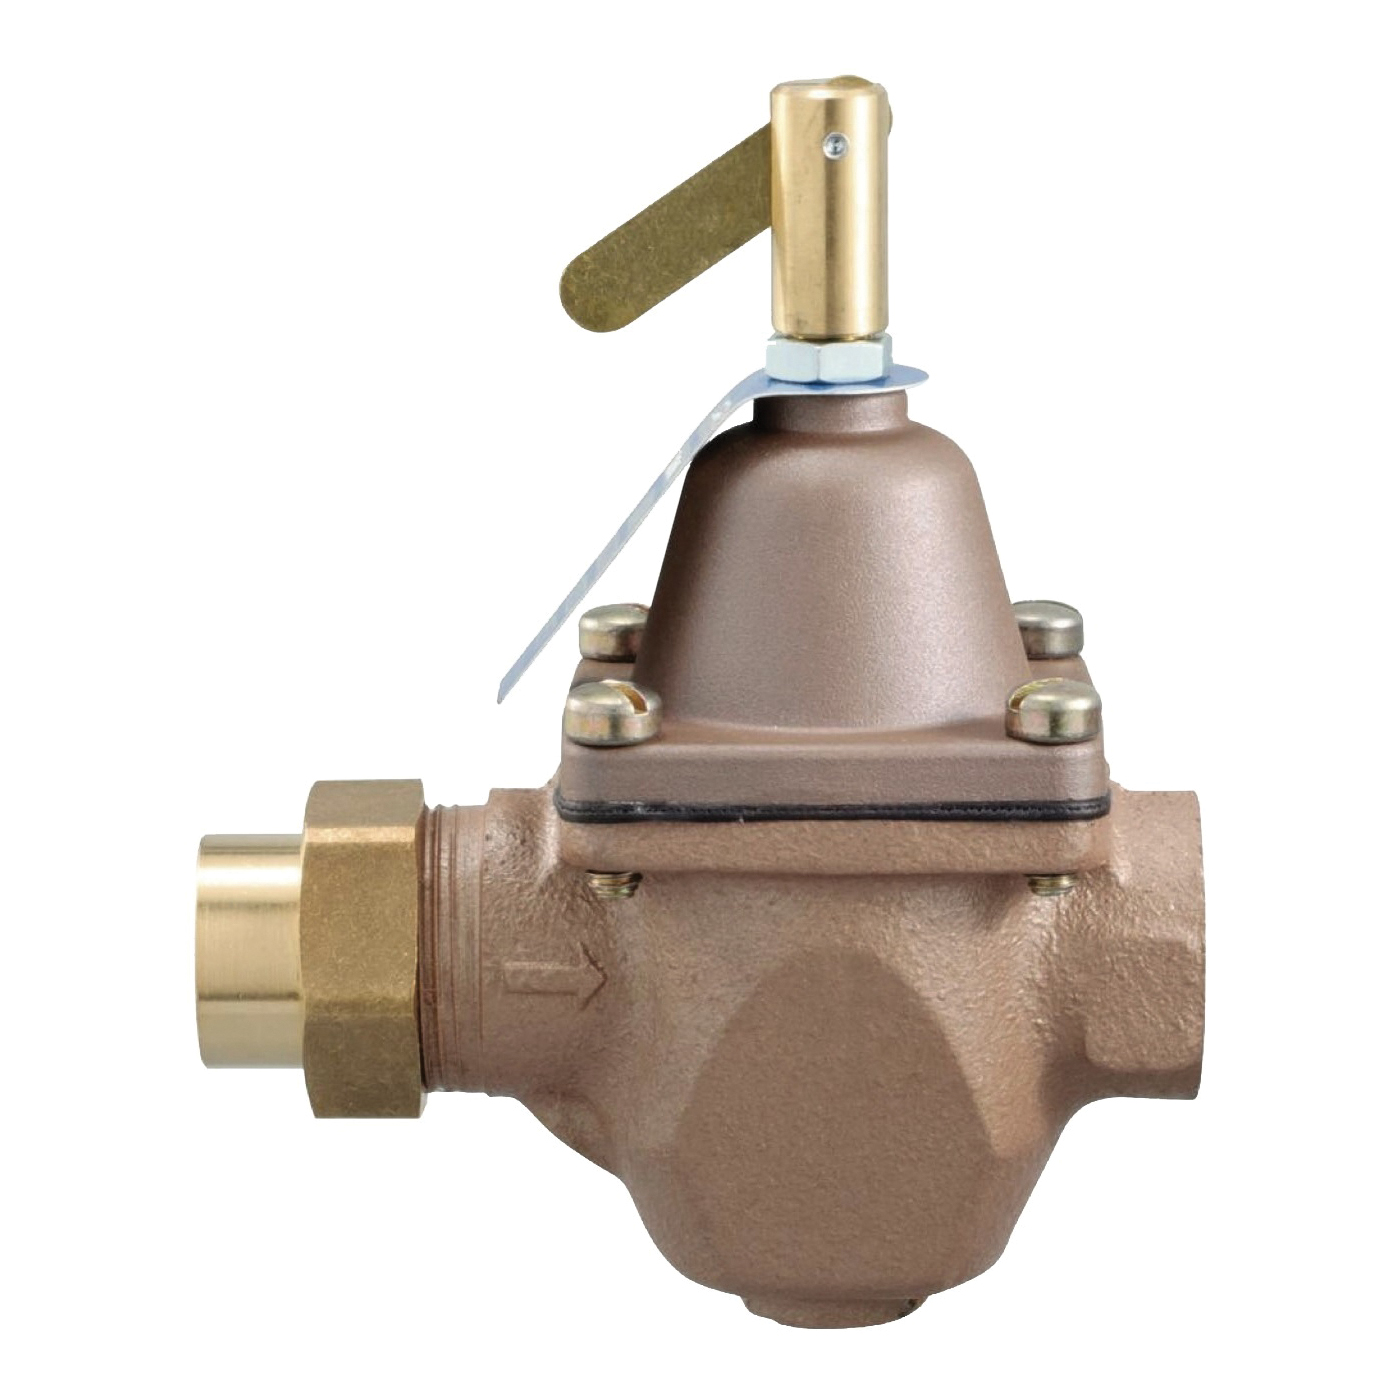 Picture of Watts 0950001 Pressure Regulating Valve, 1/2 in Connection